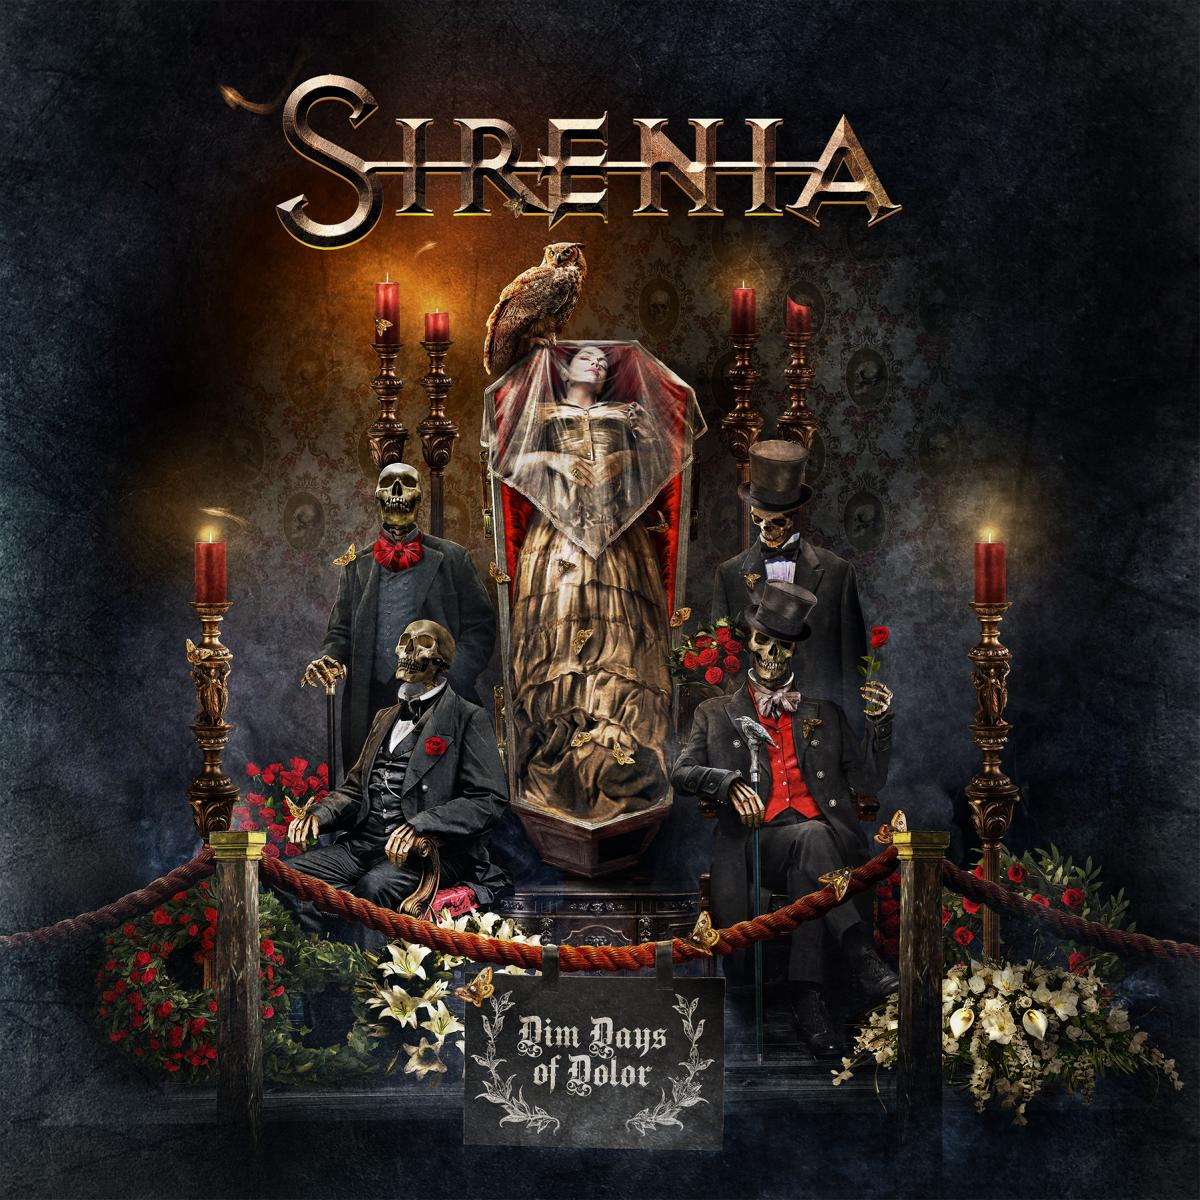 sirenia-dim-days-of-dolor.jpg